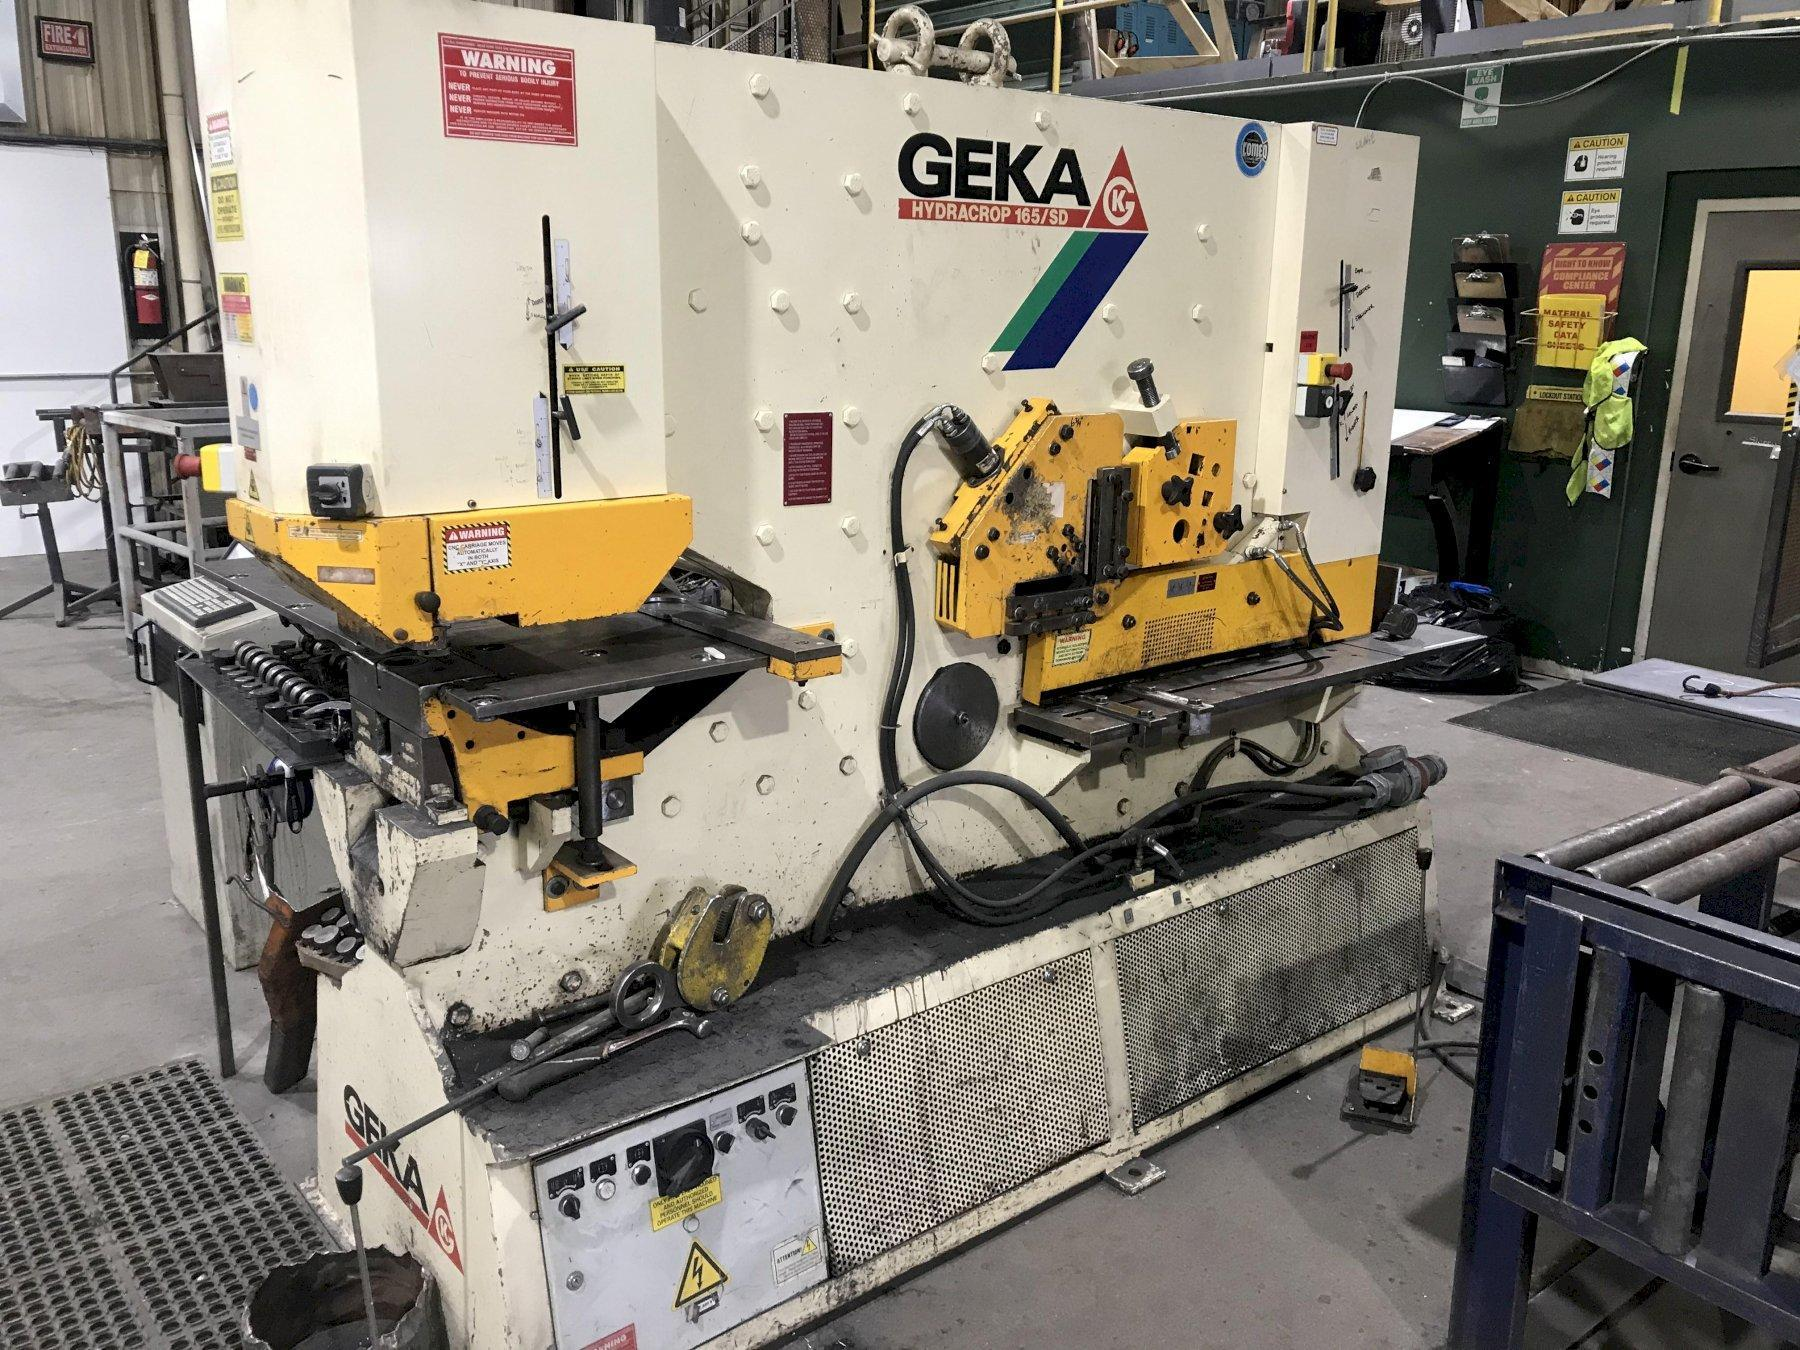 165 Ton Geka Hydracrop 165/300 Ironworker with Saampoxy CNC Positioning